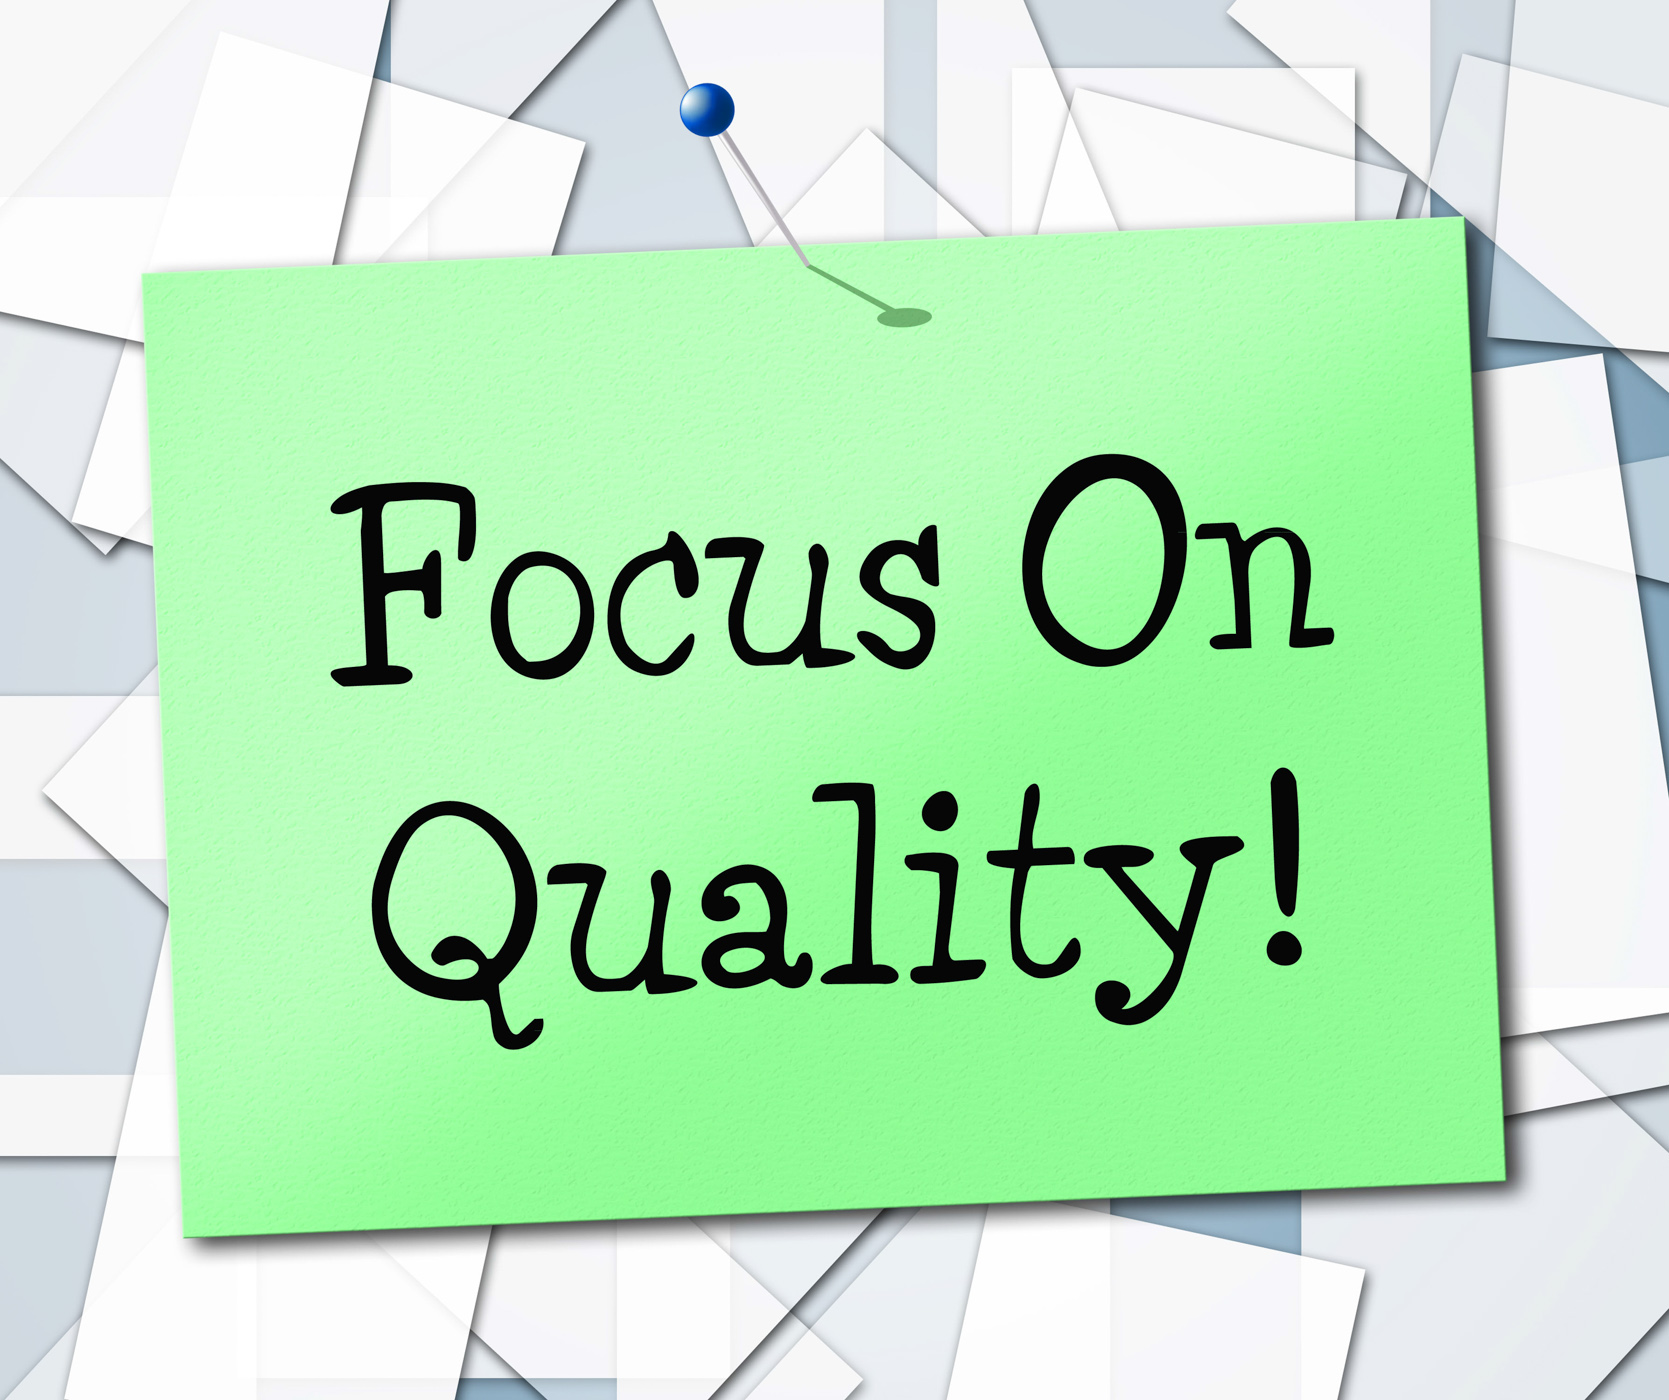 Focus on quality represents certify approve and excellent photo